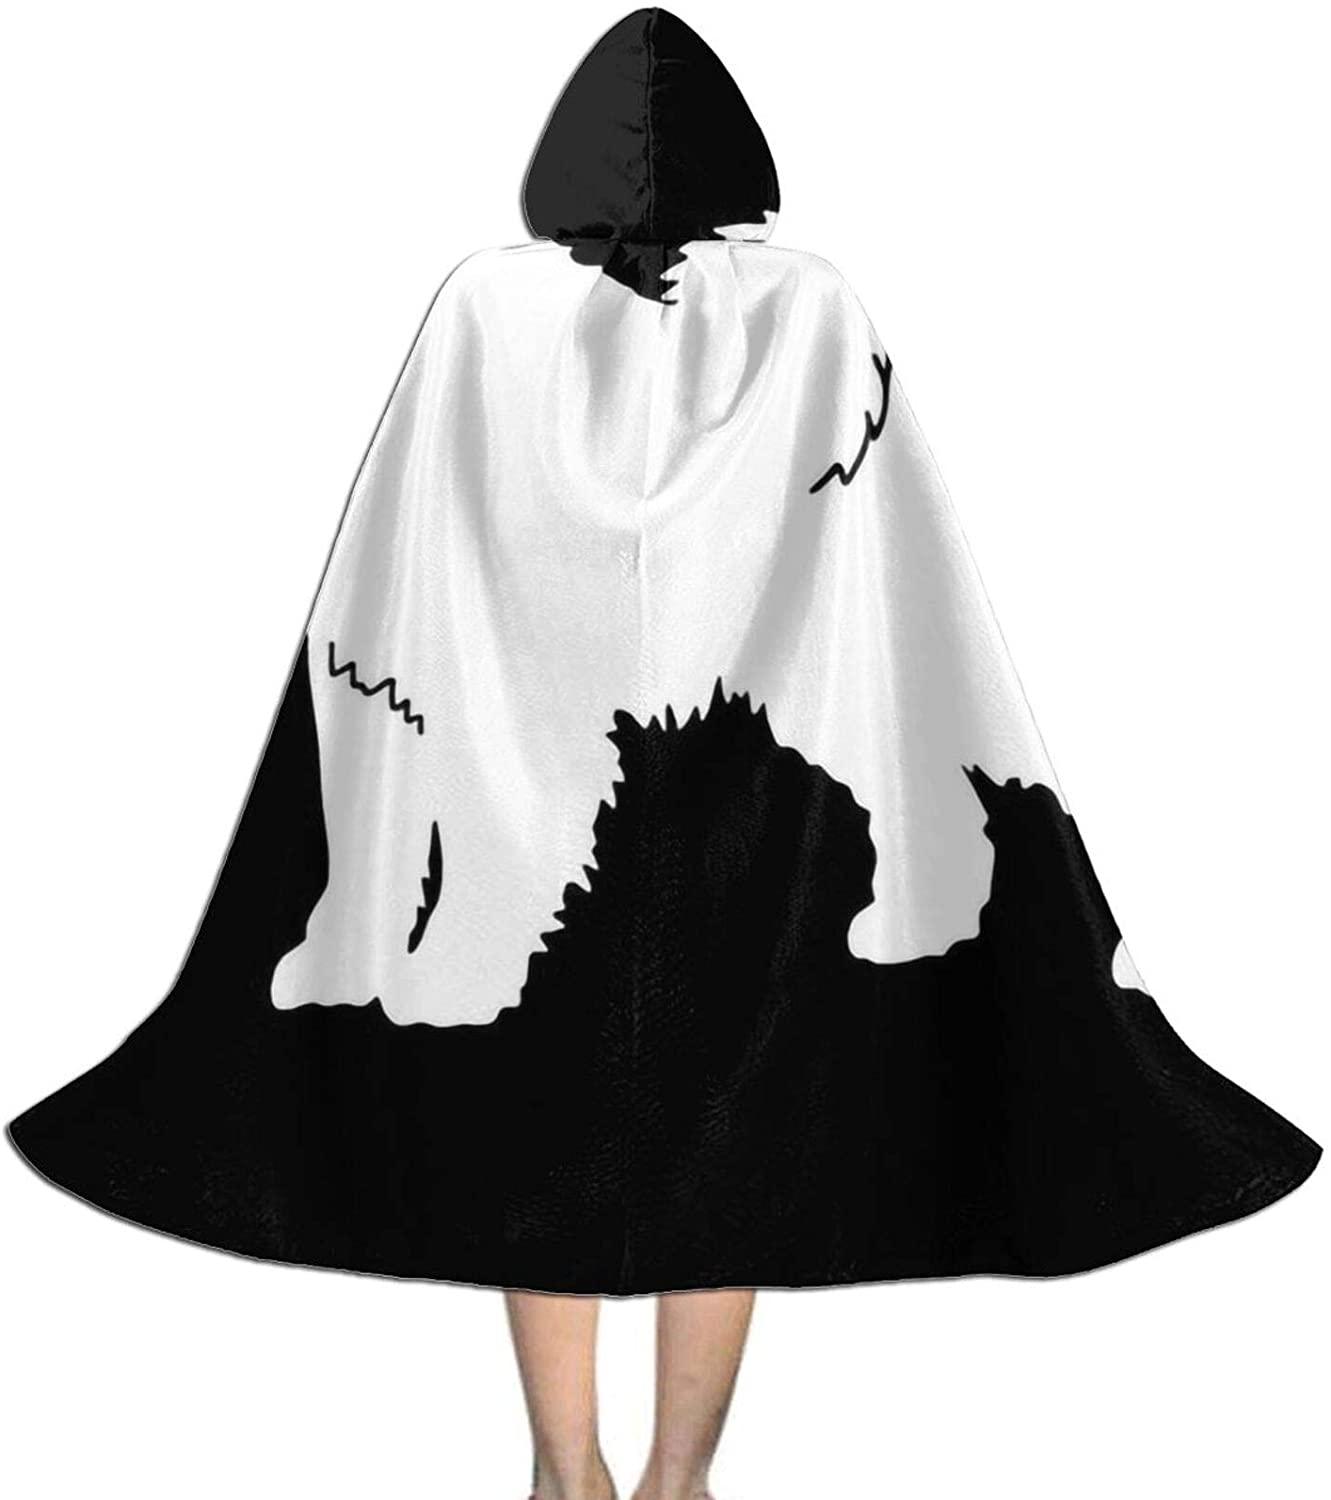 LNUO-1 Unisex Samoyed Dog1 Kid's Long Hooded Cloak Cape for Halloween Party Role Cosplay Costumes